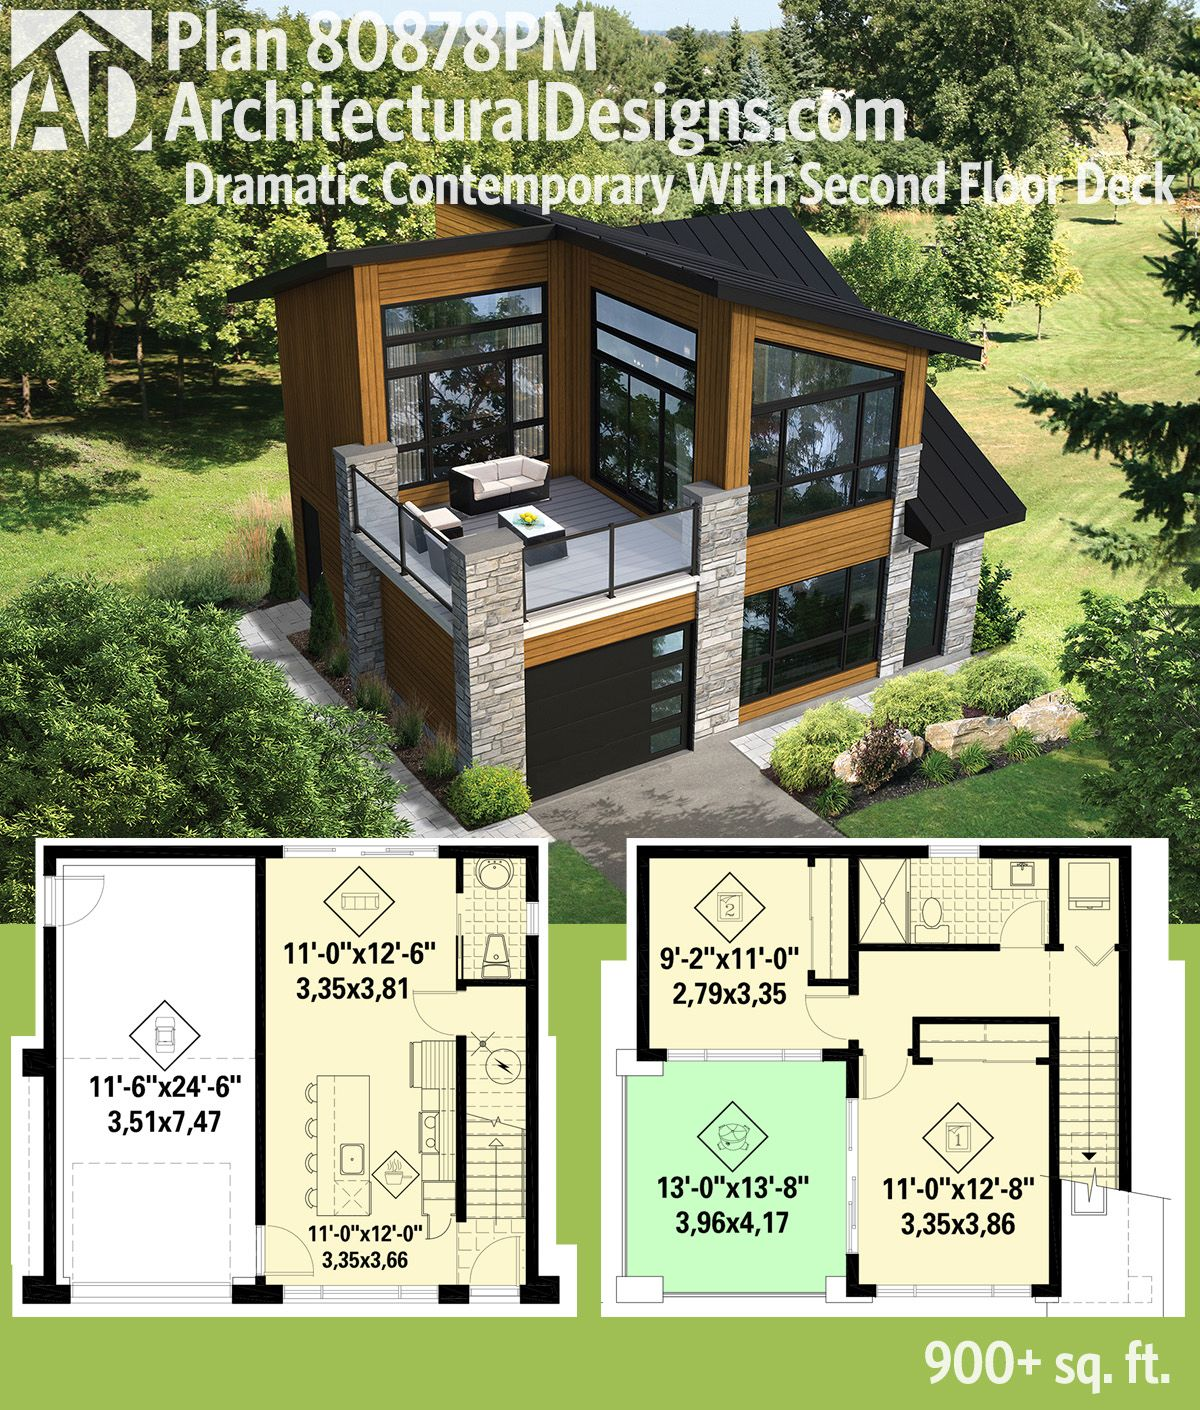 Plan 80878pm dramatic contemporary with second floor deck for Modern house 8 part 10